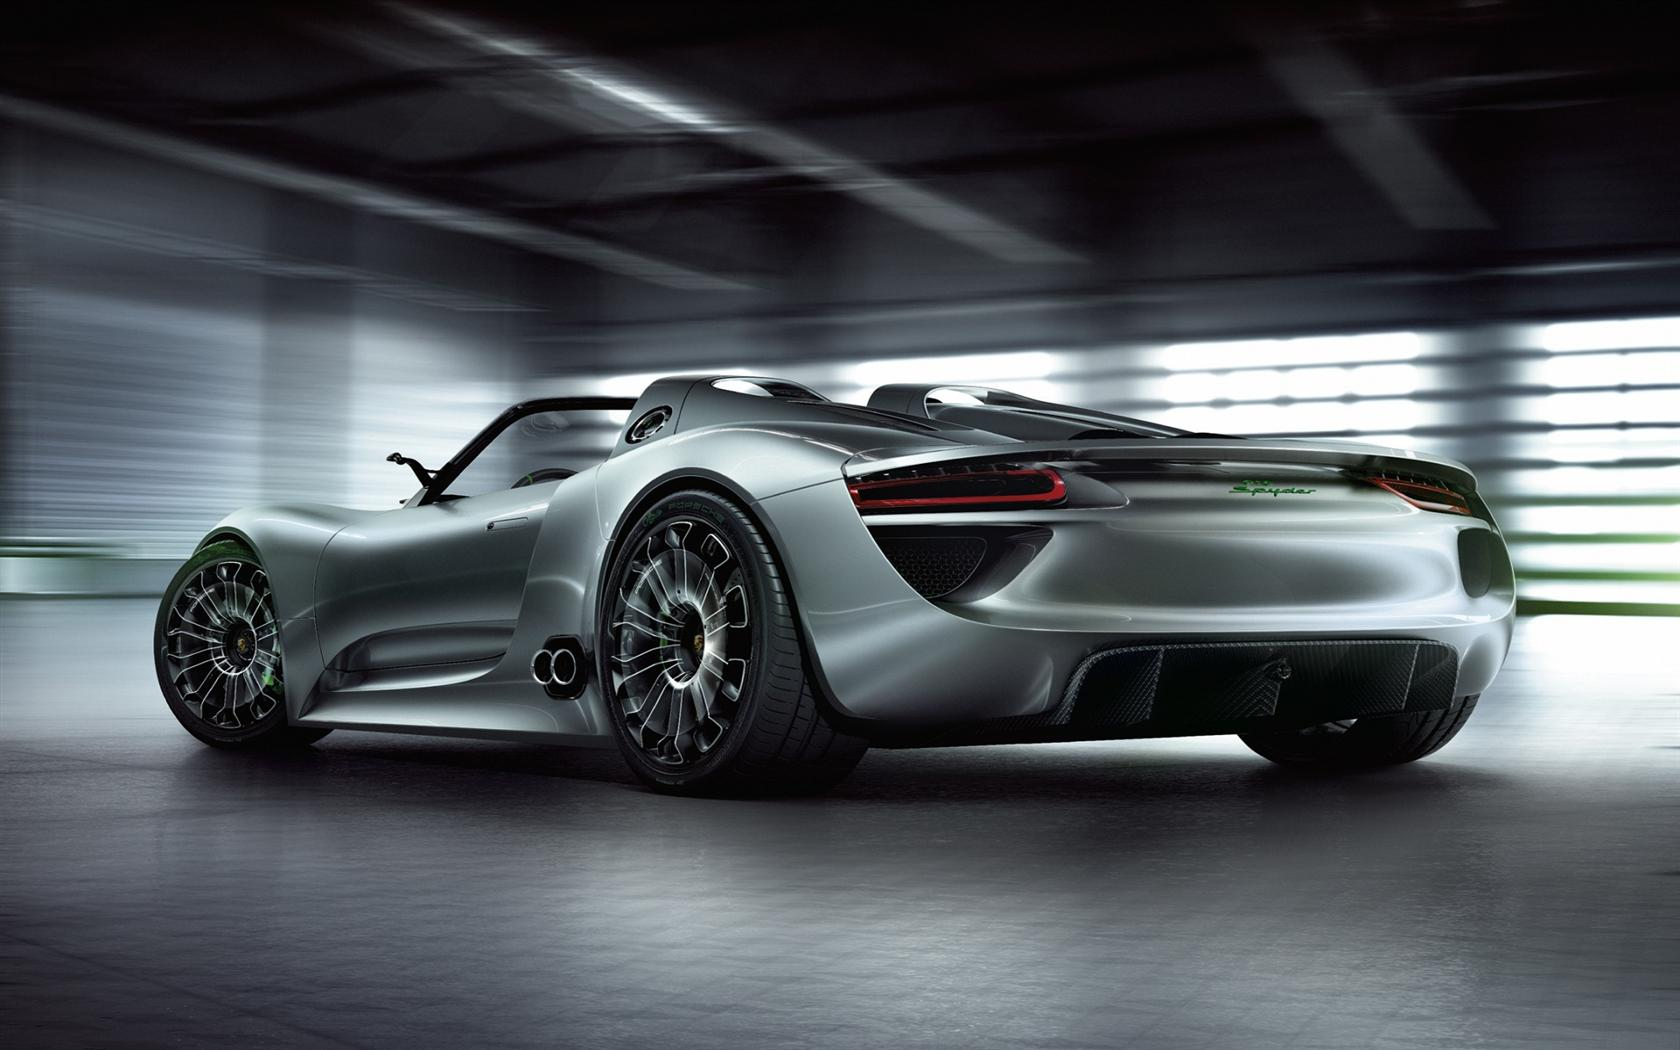 2010 porsche 918 spyder concept price porsche 918 spyder. Black Bedroom Furniture Sets. Home Design Ideas